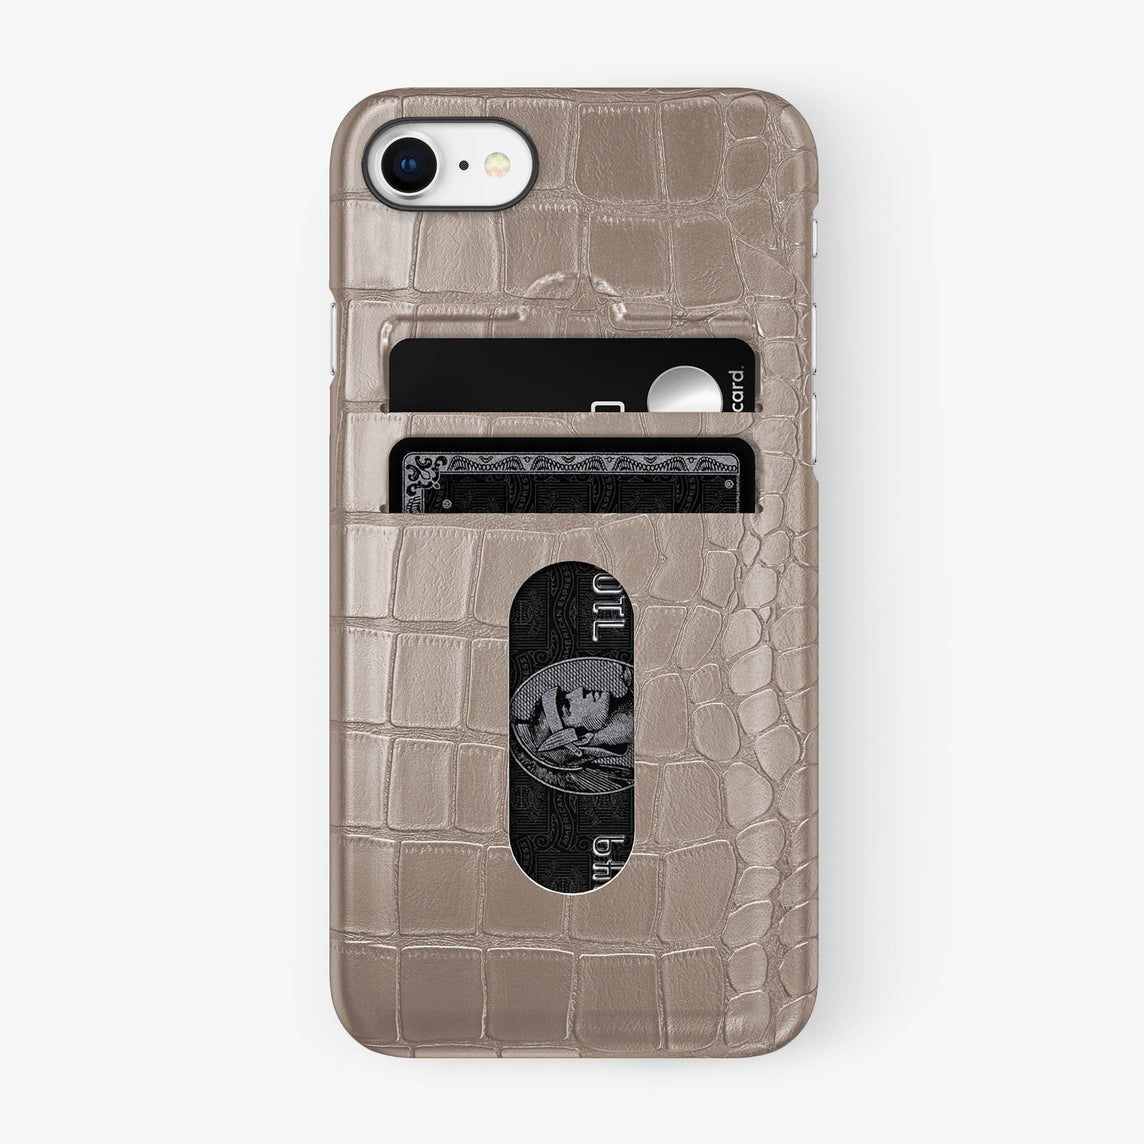 Alligator Card Holder Case iPhone 7/8 | Latte - Black